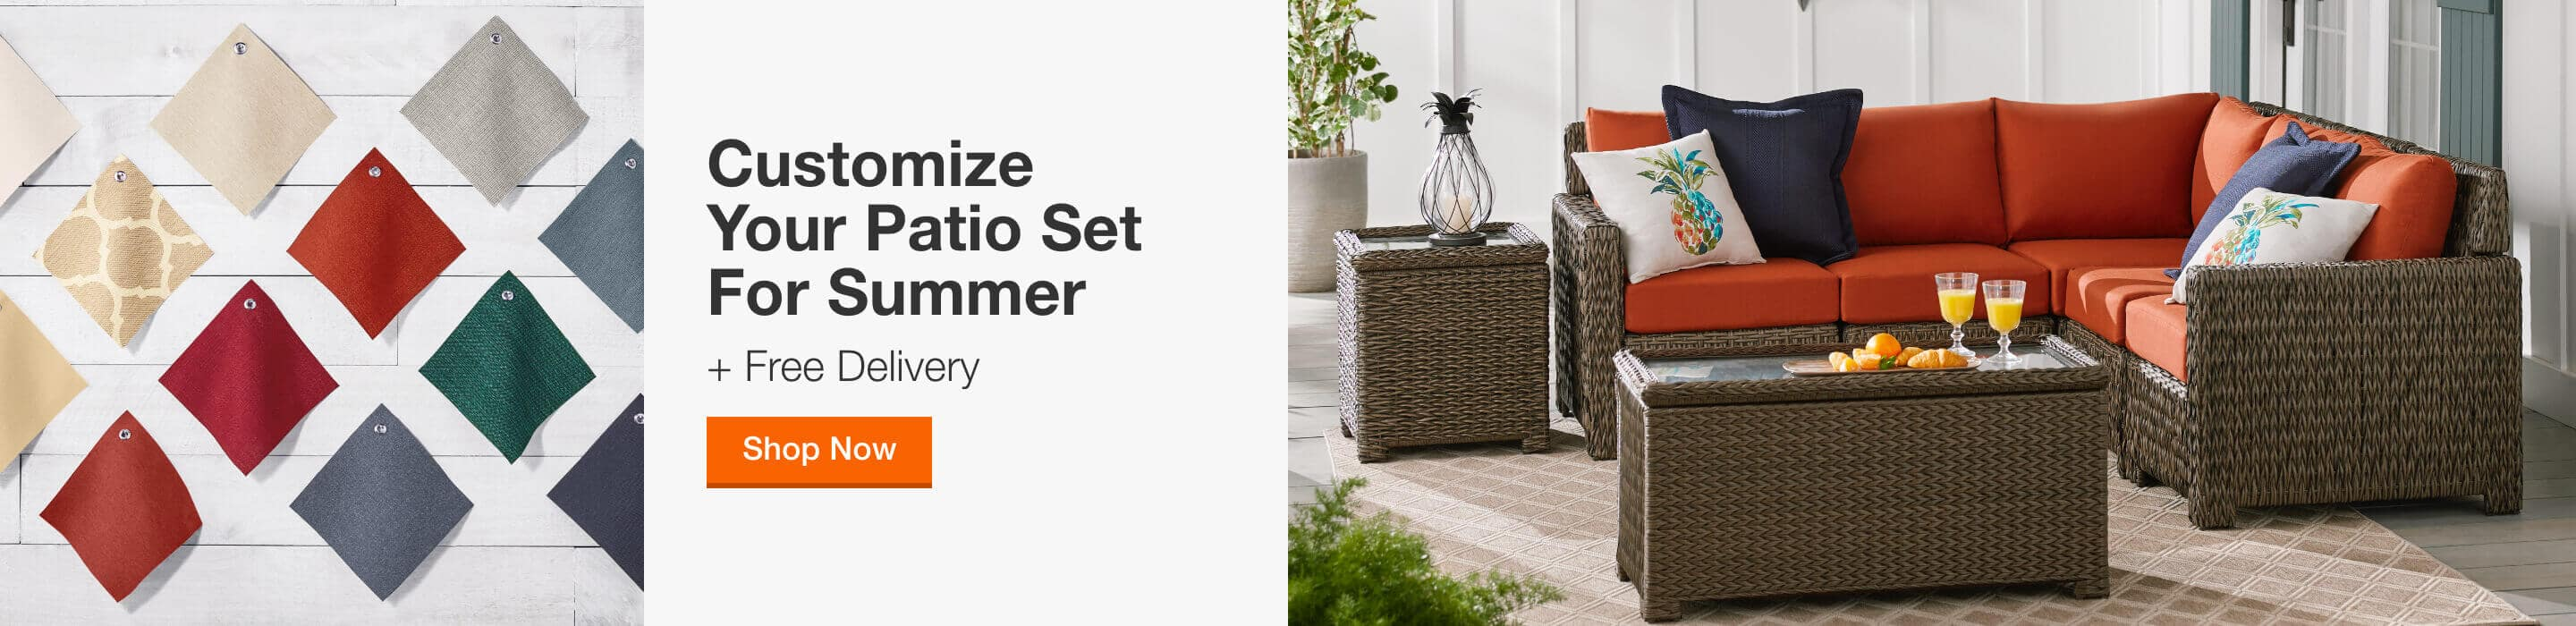 Customize Your Patio Set for Summer + Free Delivery. Shop Now